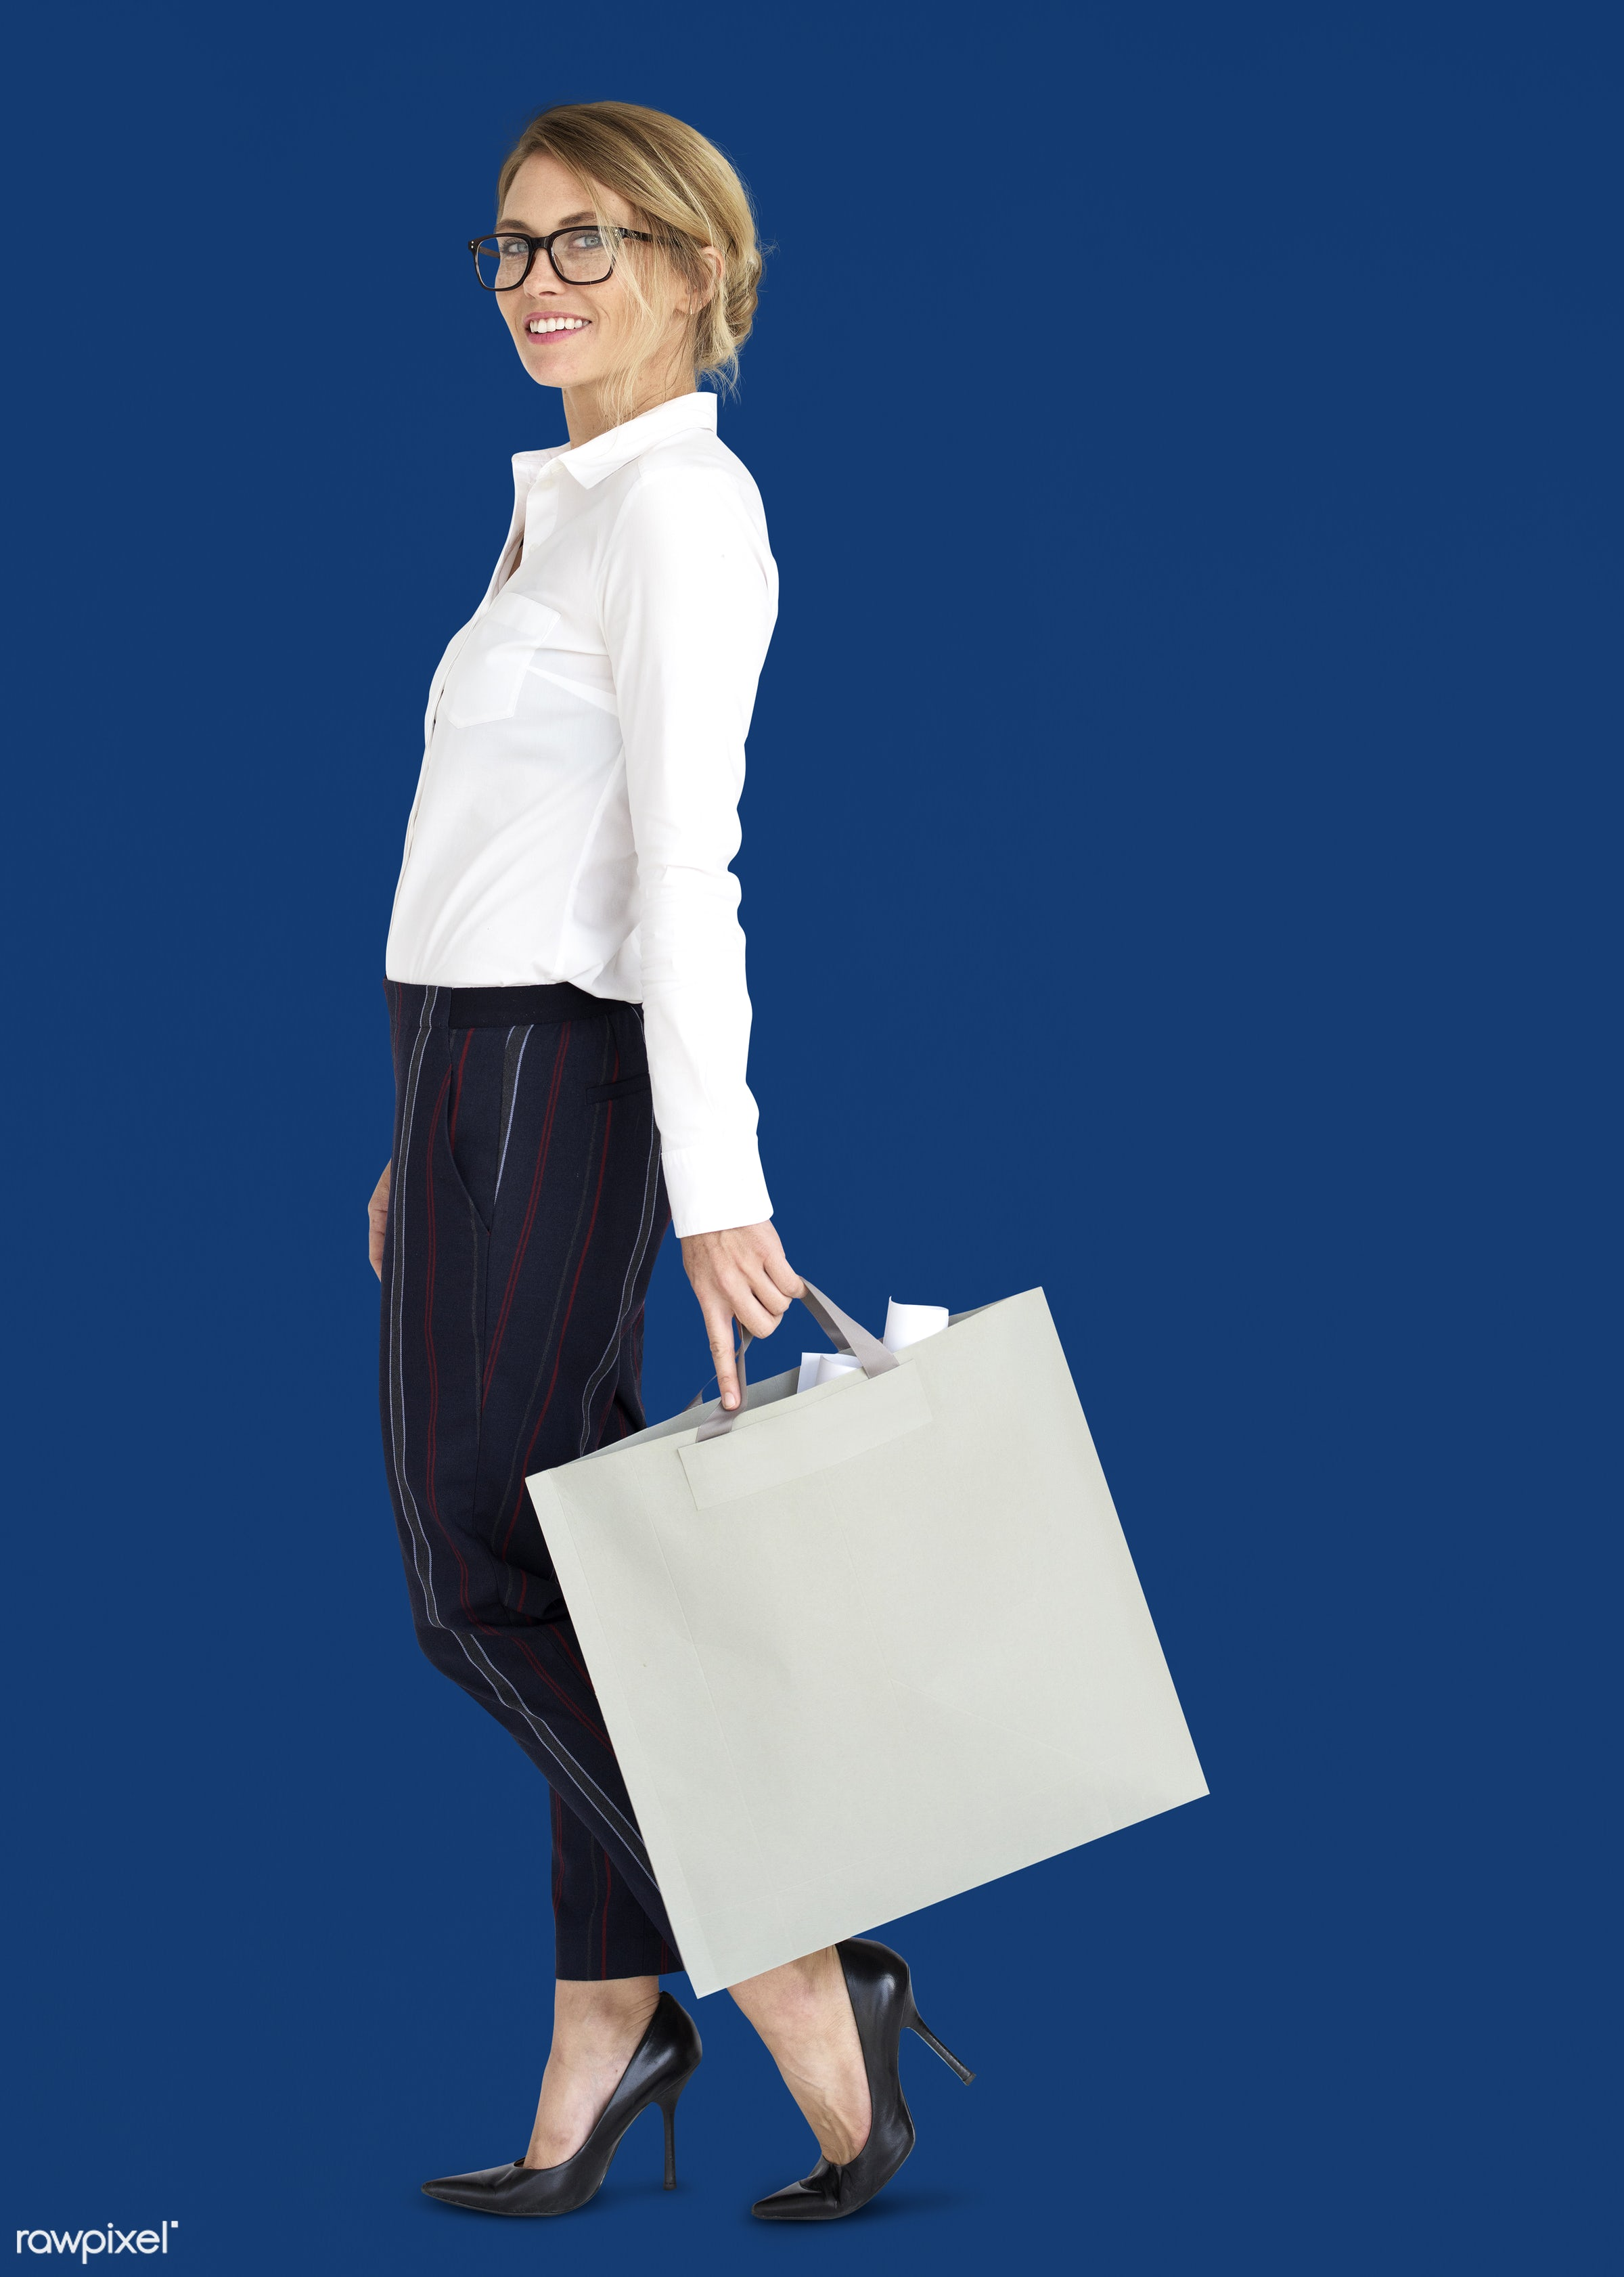 studio, expression, person, people, woman, smile, cheerful, smiling, isolated, bag, happiness, businesswoman, portrait,...